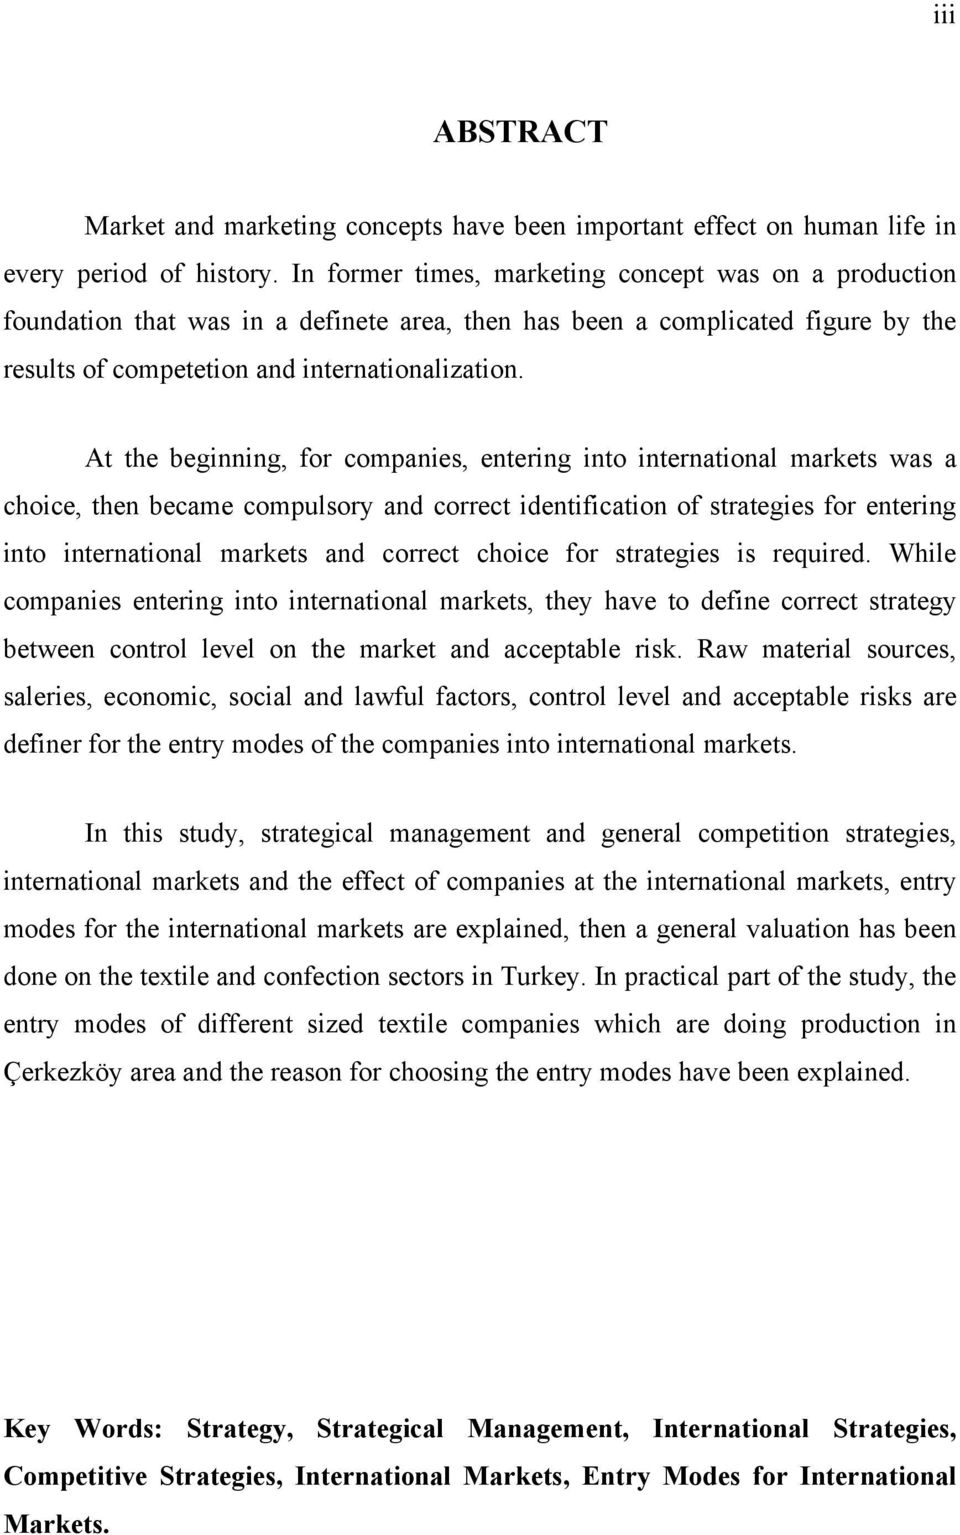 At the beginning, for companies, entering into international markets was a choice, then became compulsory and correct identification of strategies for entering into international markets and correct